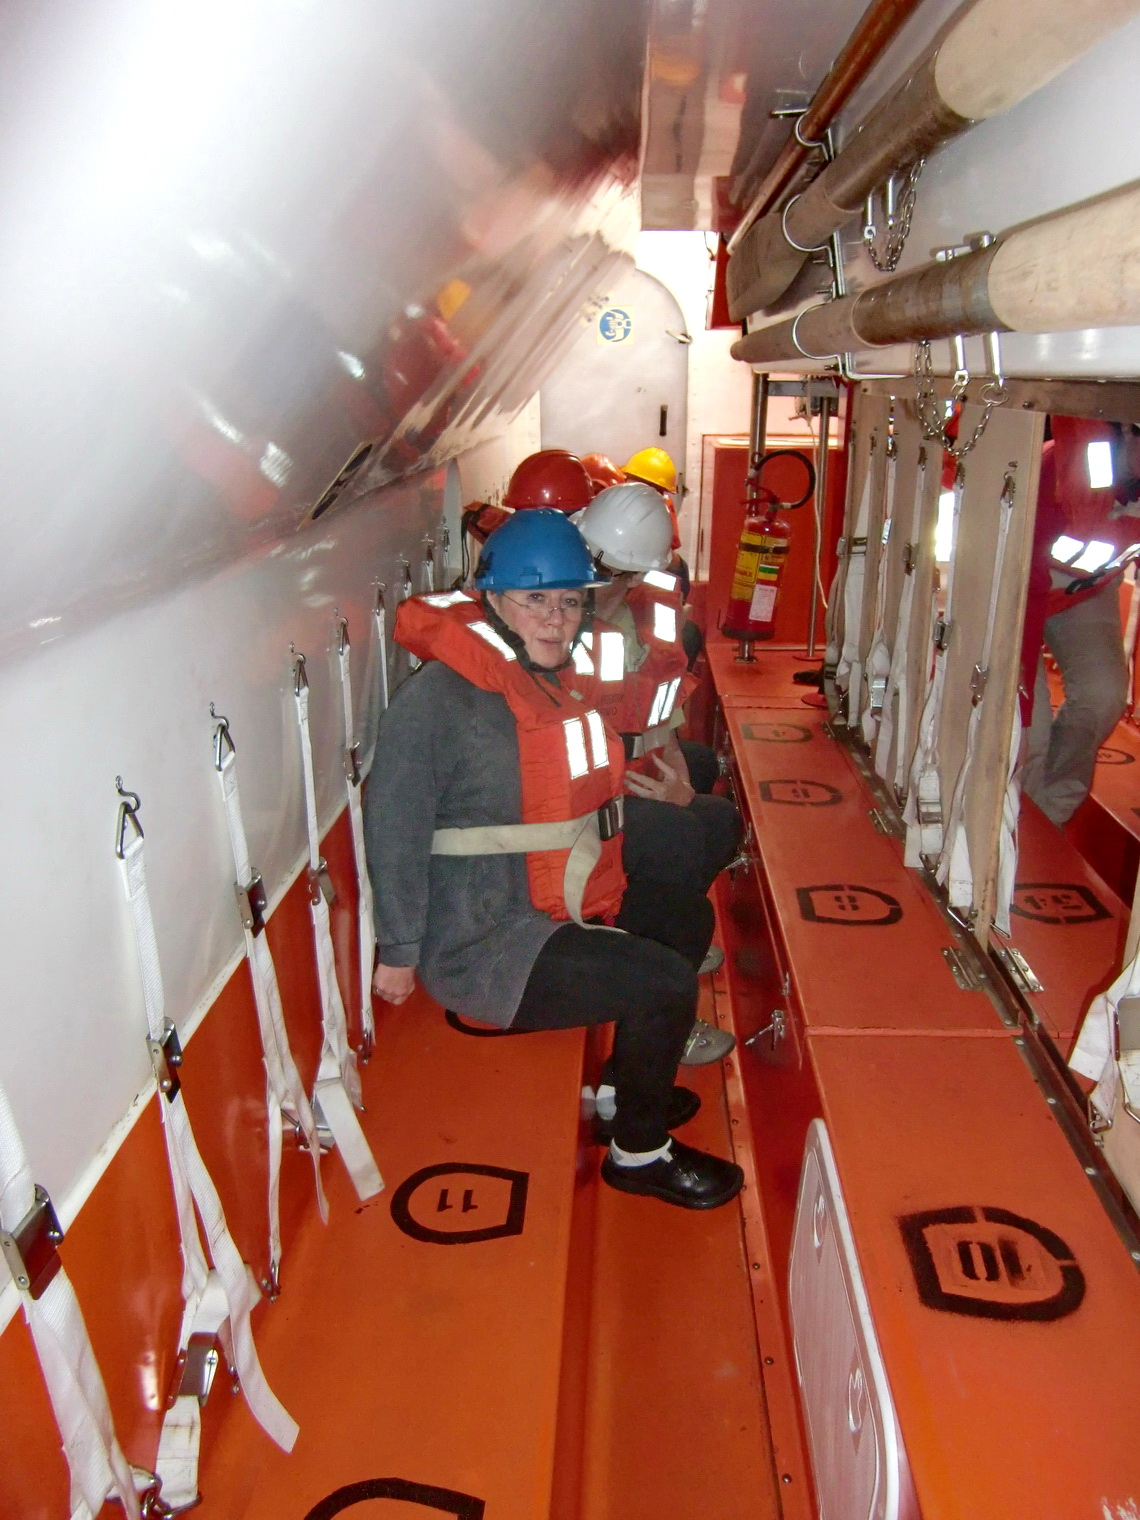 Inside the lifeboat